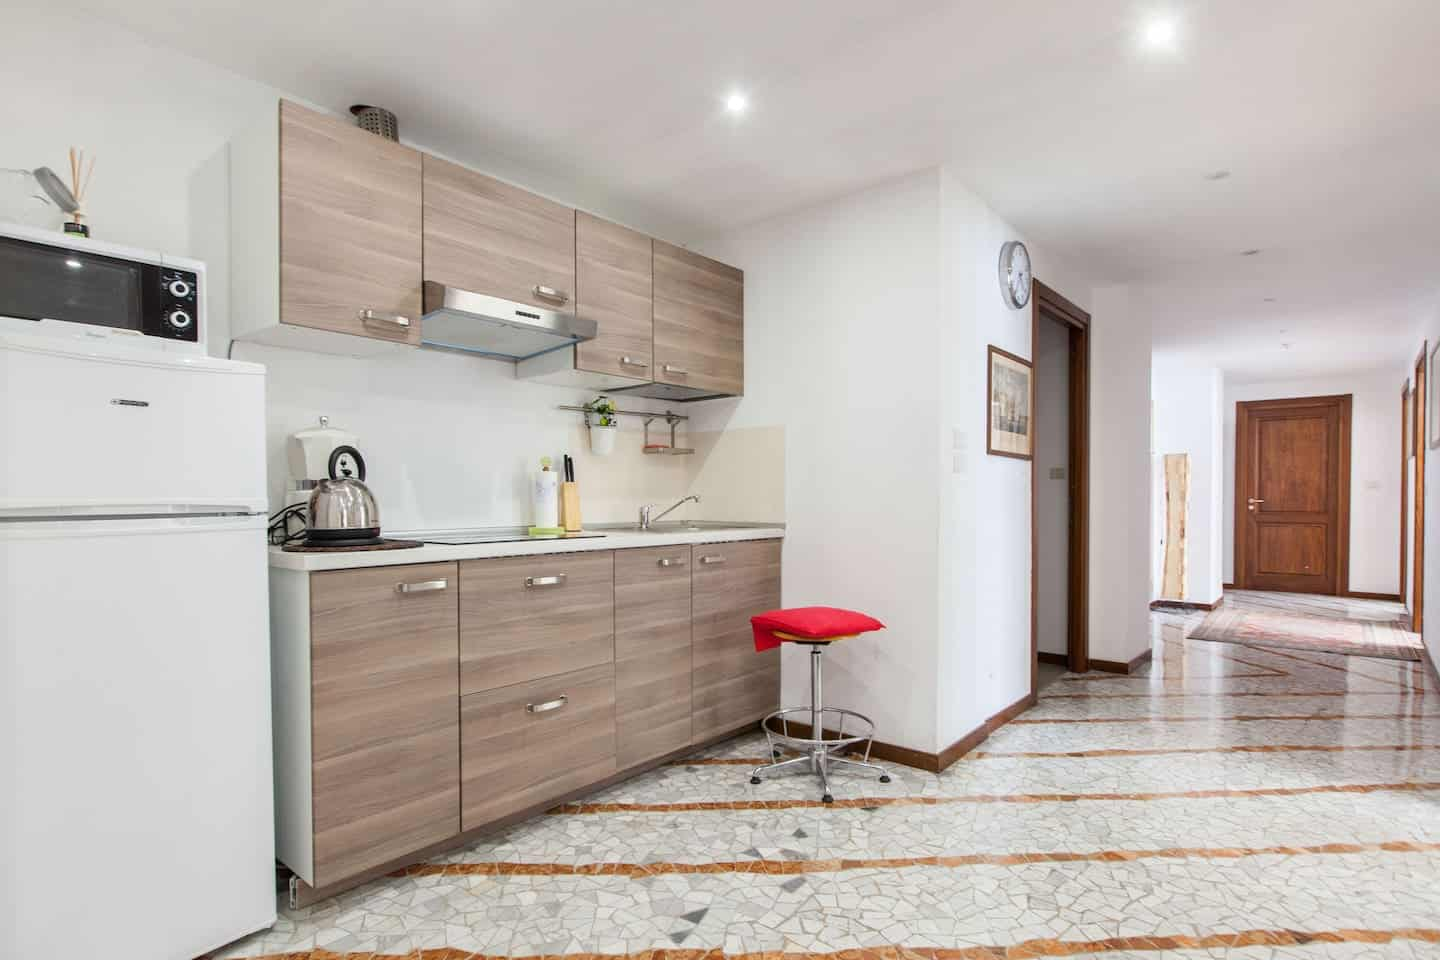 Image of Airbnb rental in Milan, Italy